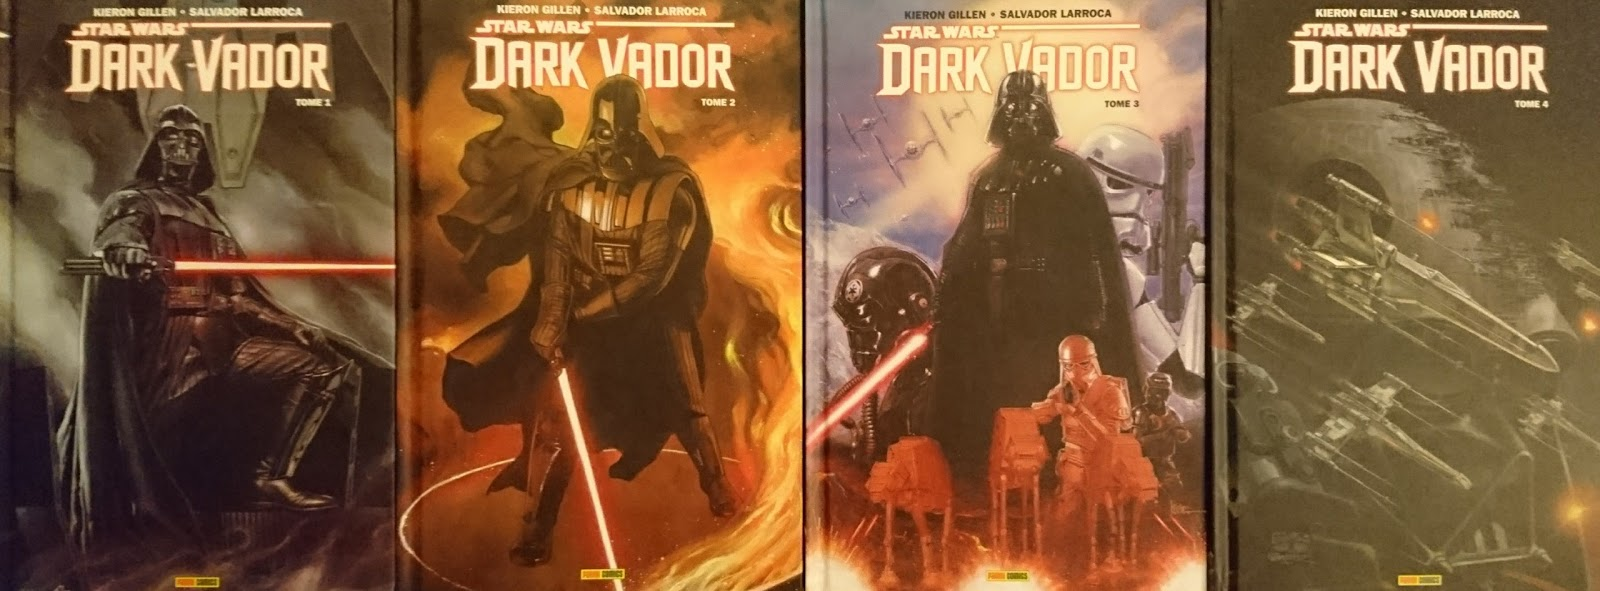 Star Wars Dark Vador comics Marvel